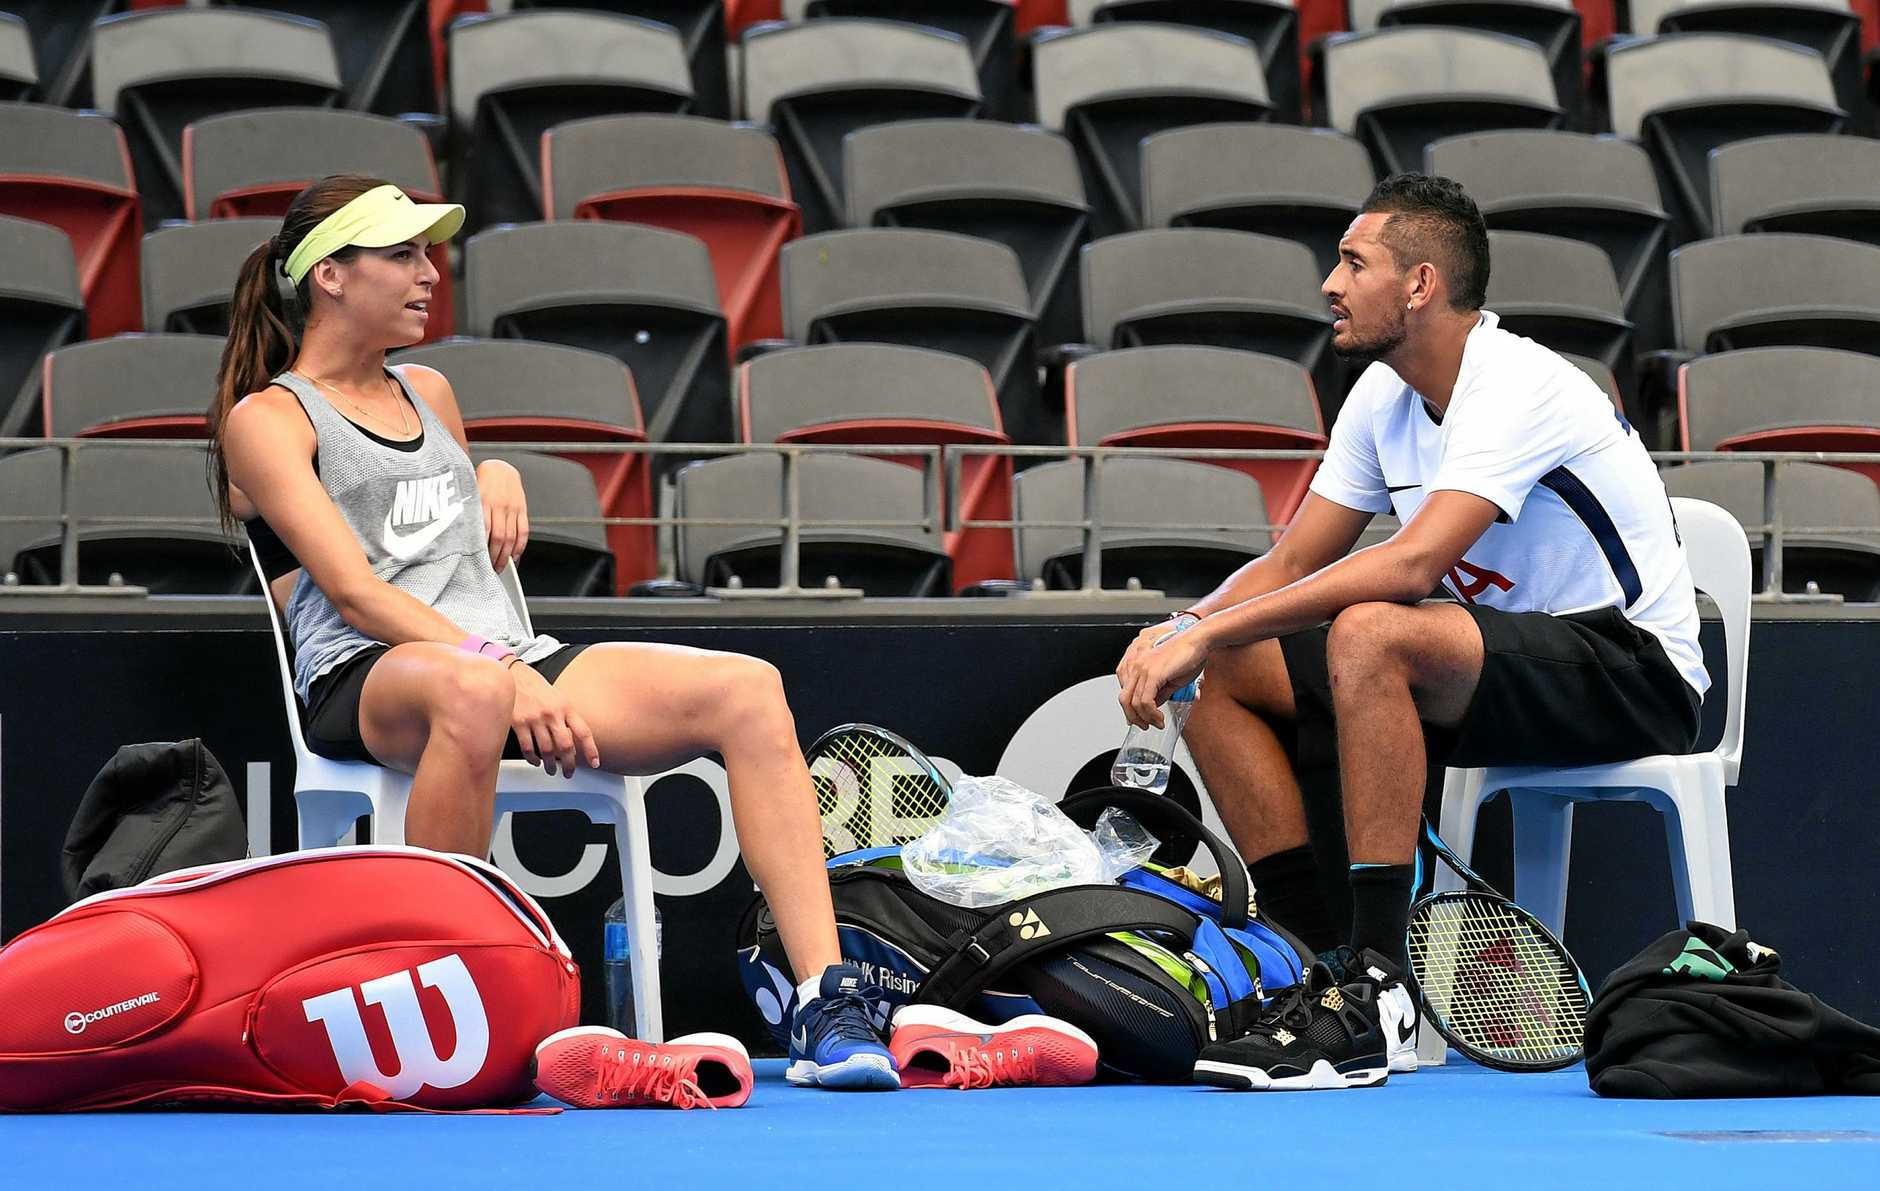 Ajla Tomljanovic with boyfriend Nick Kyrgios at practice at the Brisbane International tournament.